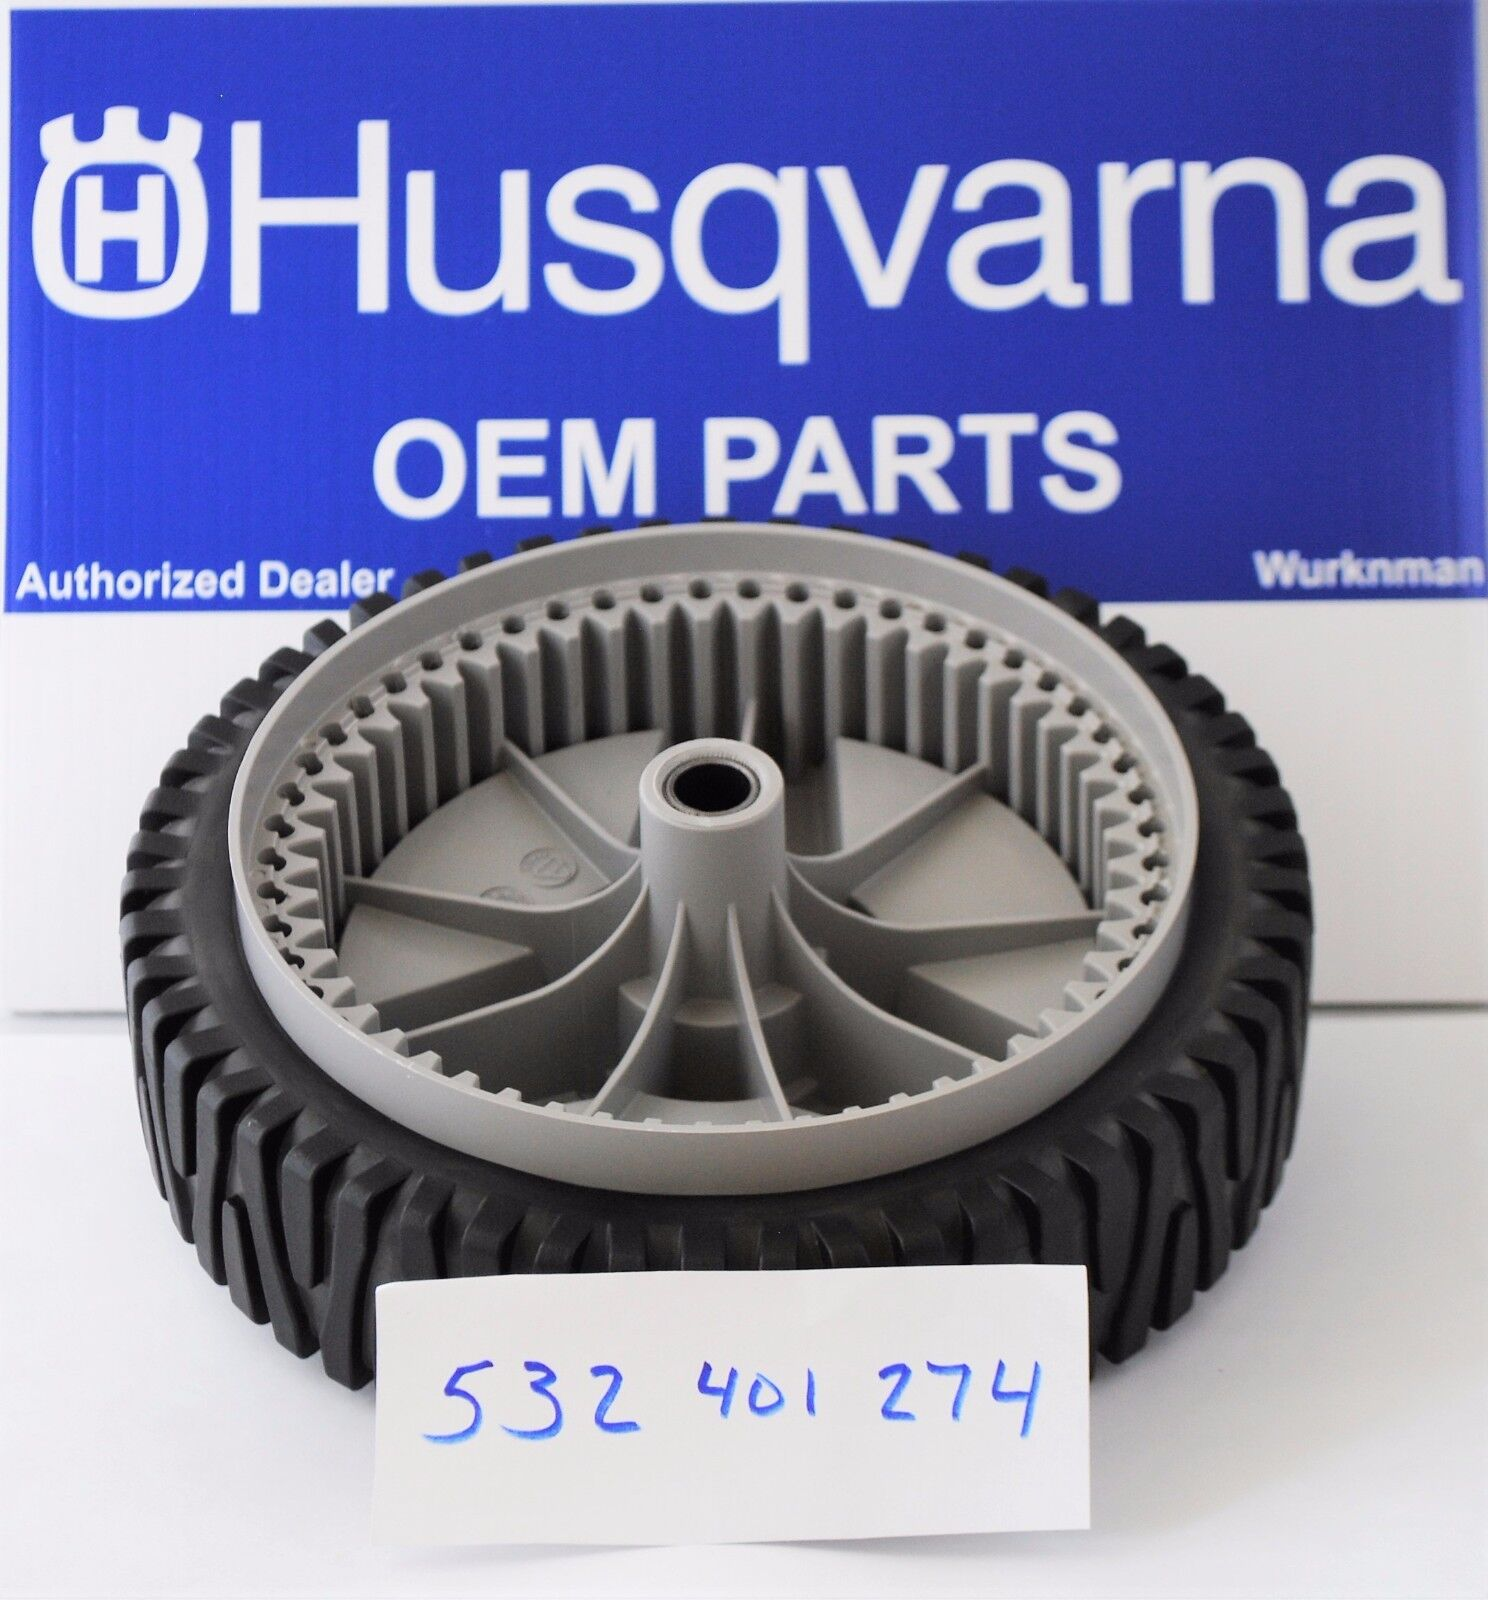 2 Husqvarna OEM 532401274 Wheels  Replaces 401274X460 and  401274 WHEELS